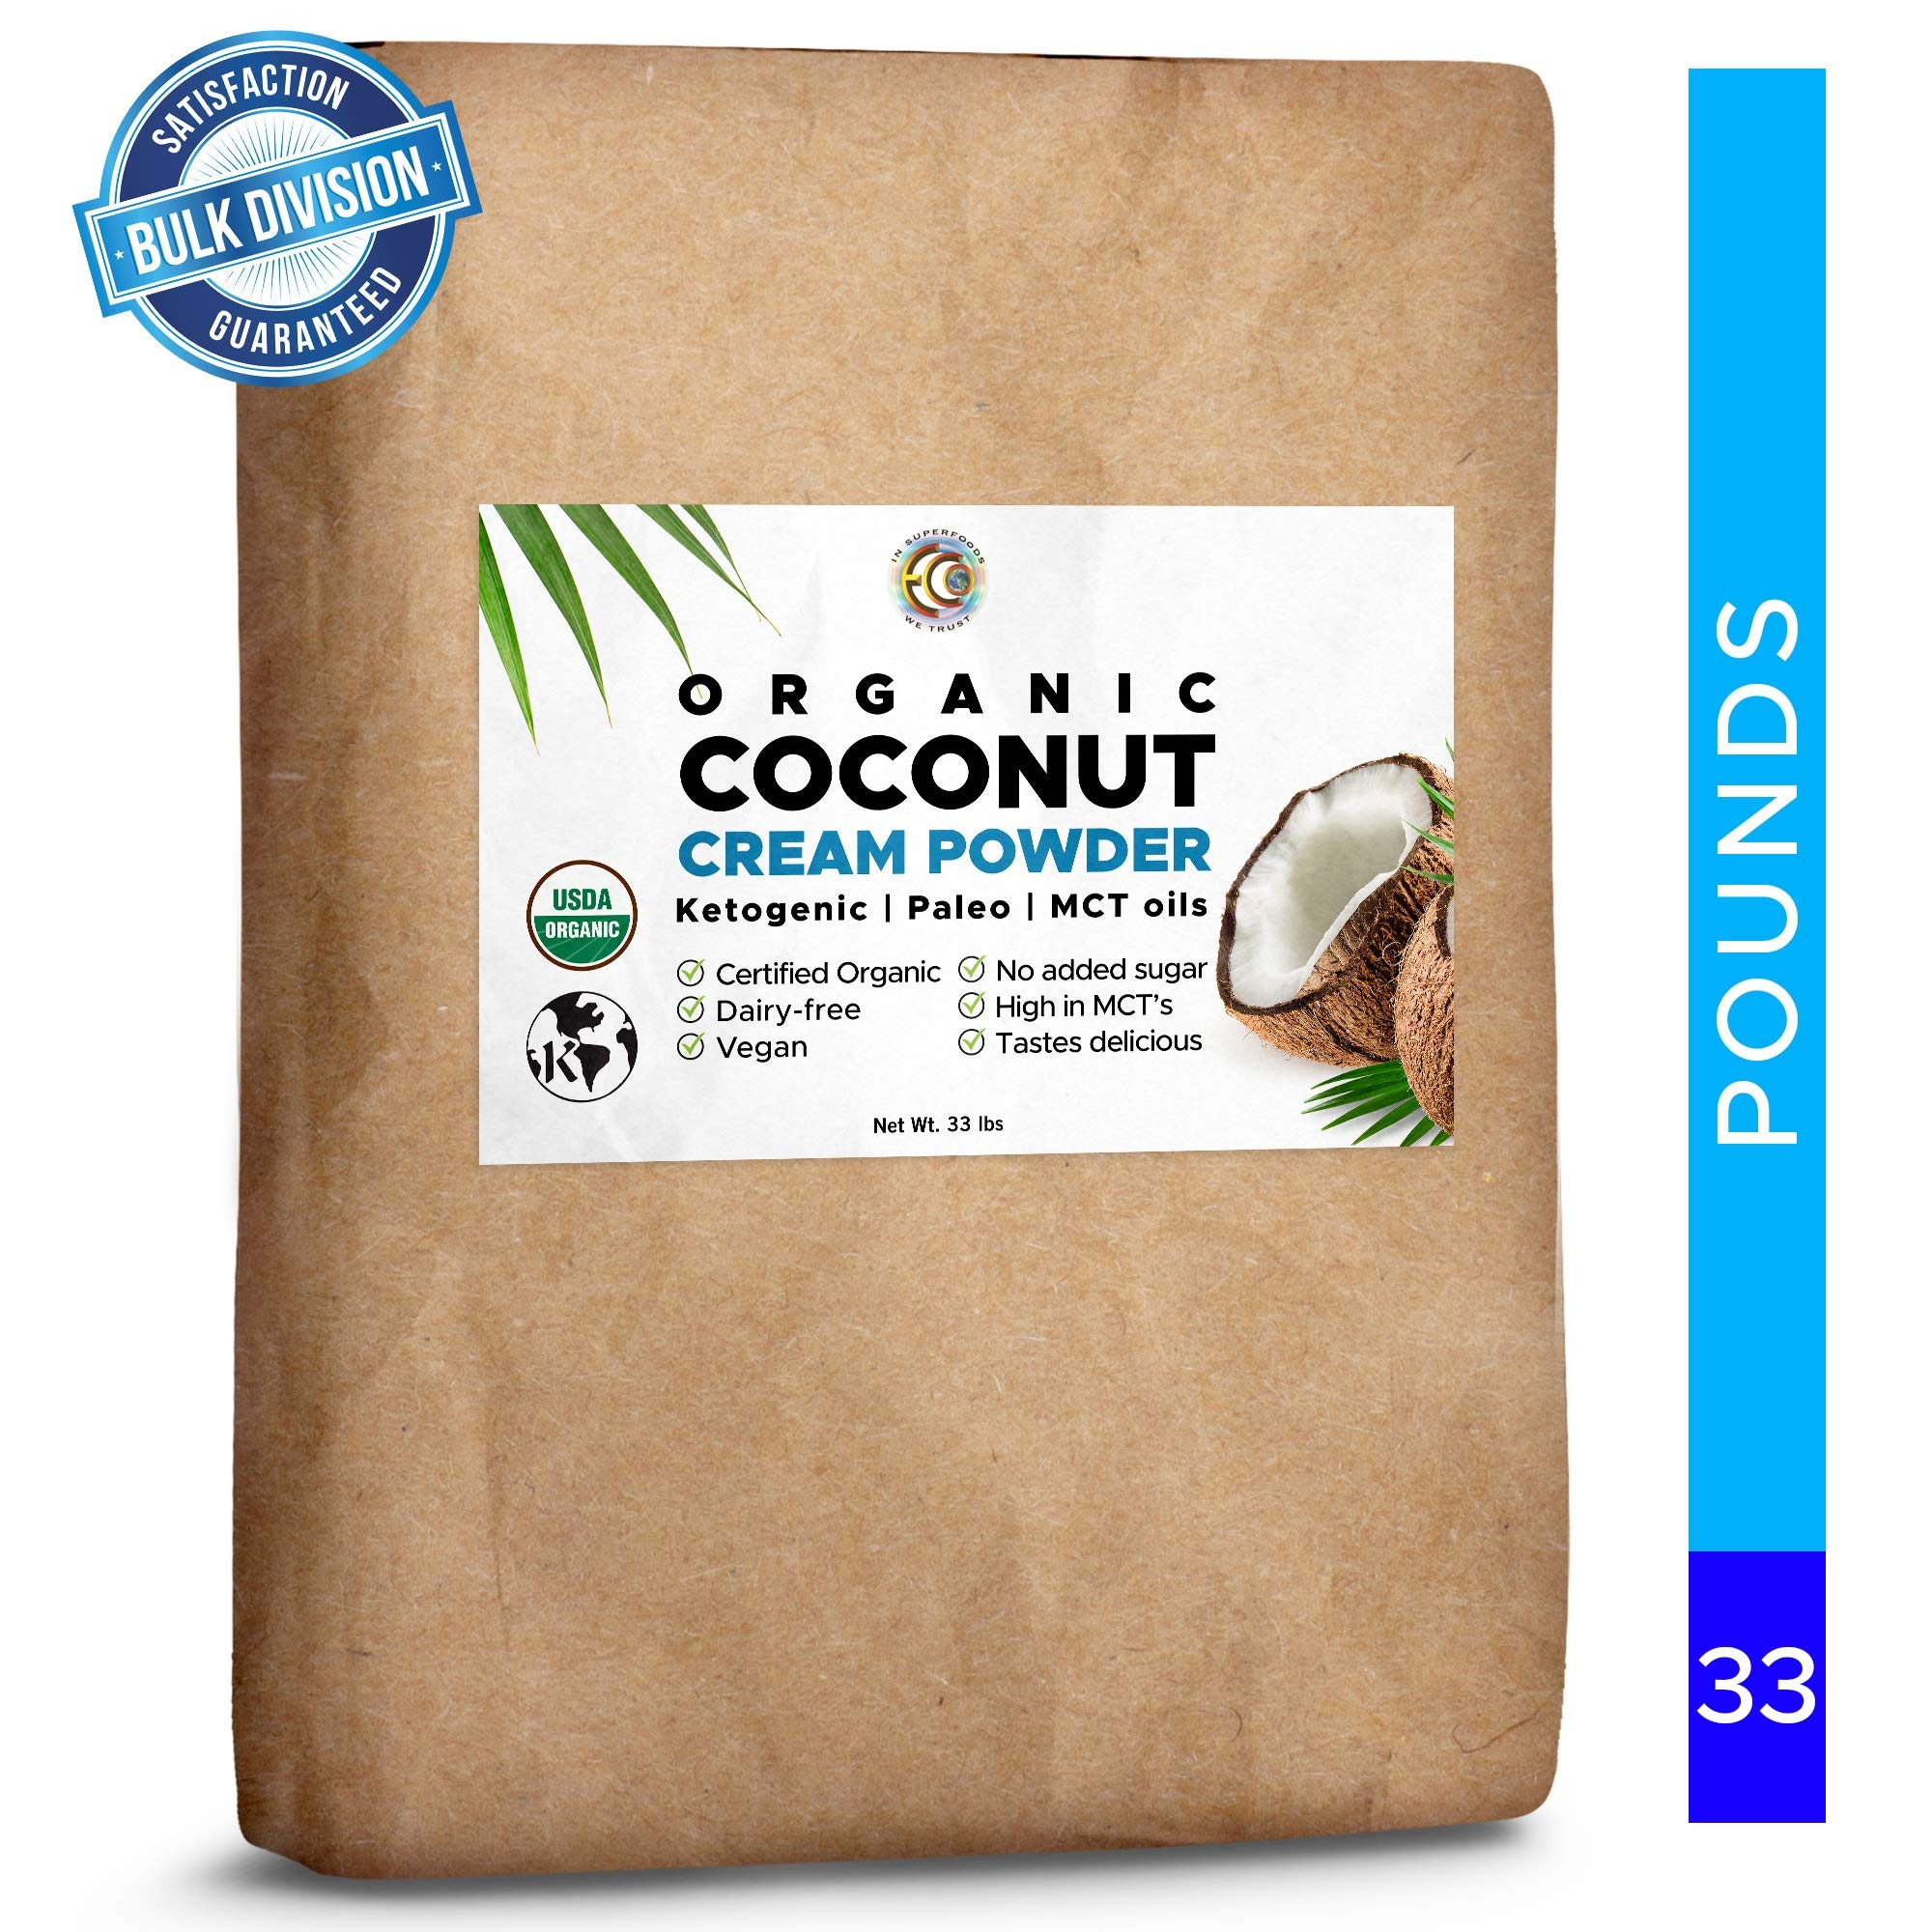 Earth Circle Organics - Organic Coconut Cream | Milk Powder, Perfect Keto Coffee Creamer - High in MCT Oil, Vegan, No Added Sugar, Vegan, Gluten and Dairy Free - (33 lbs) by Earth Circle Organics